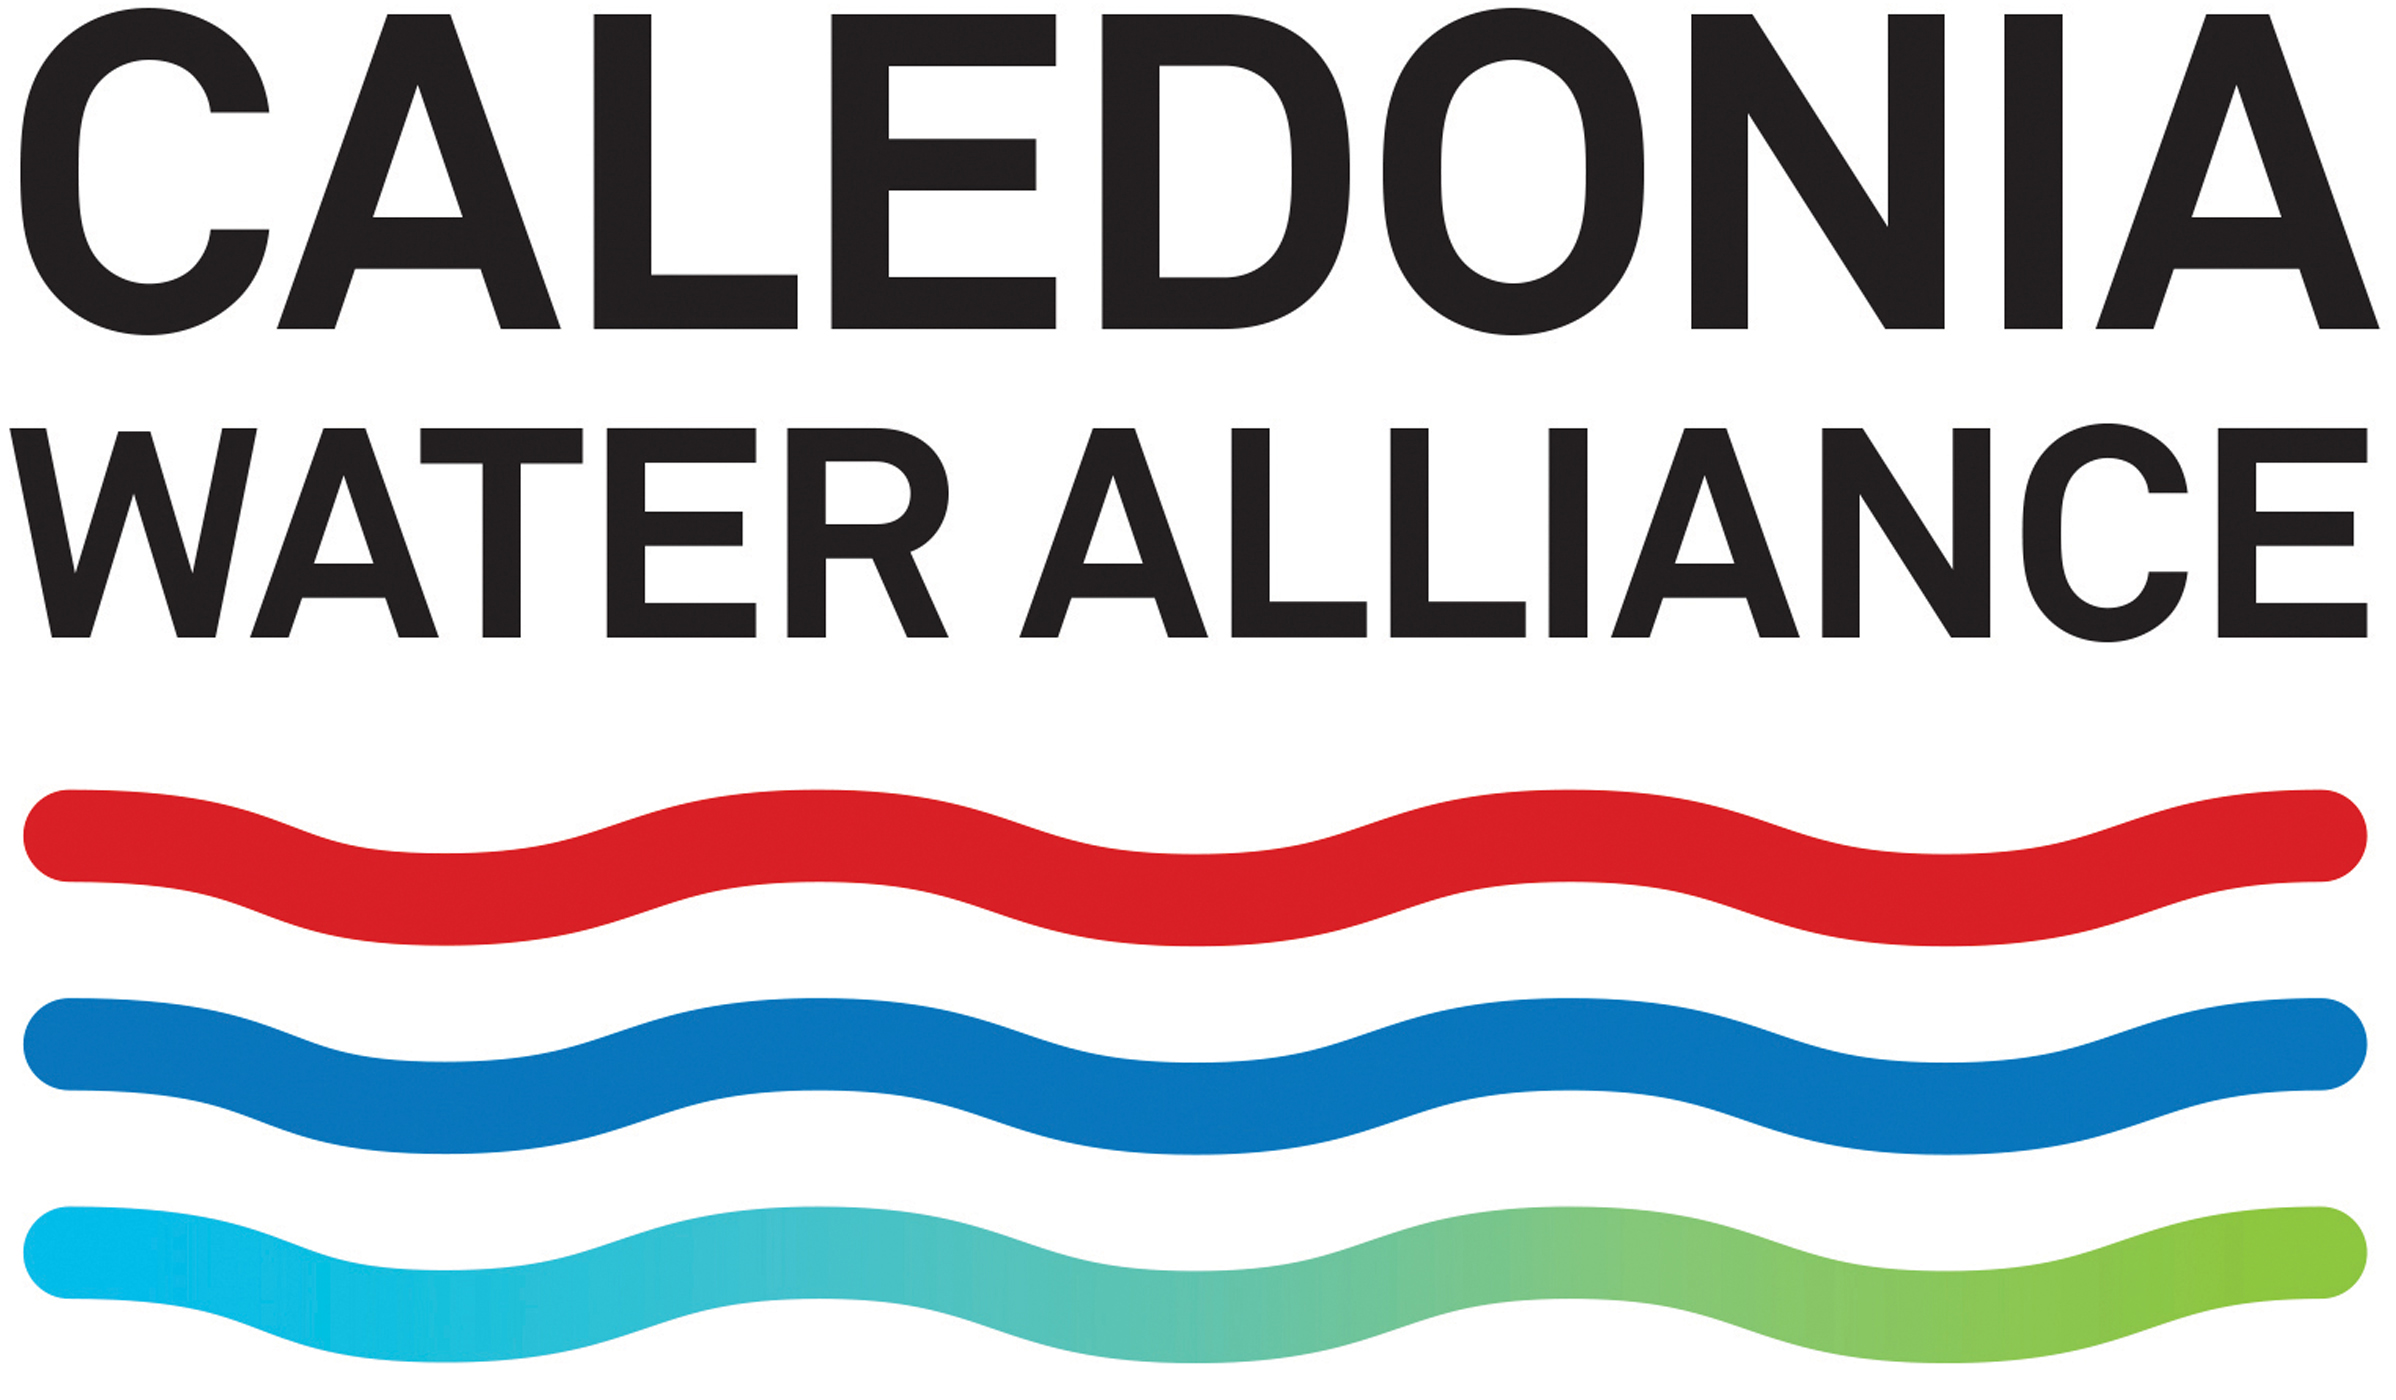 Caledonia Water Alliance